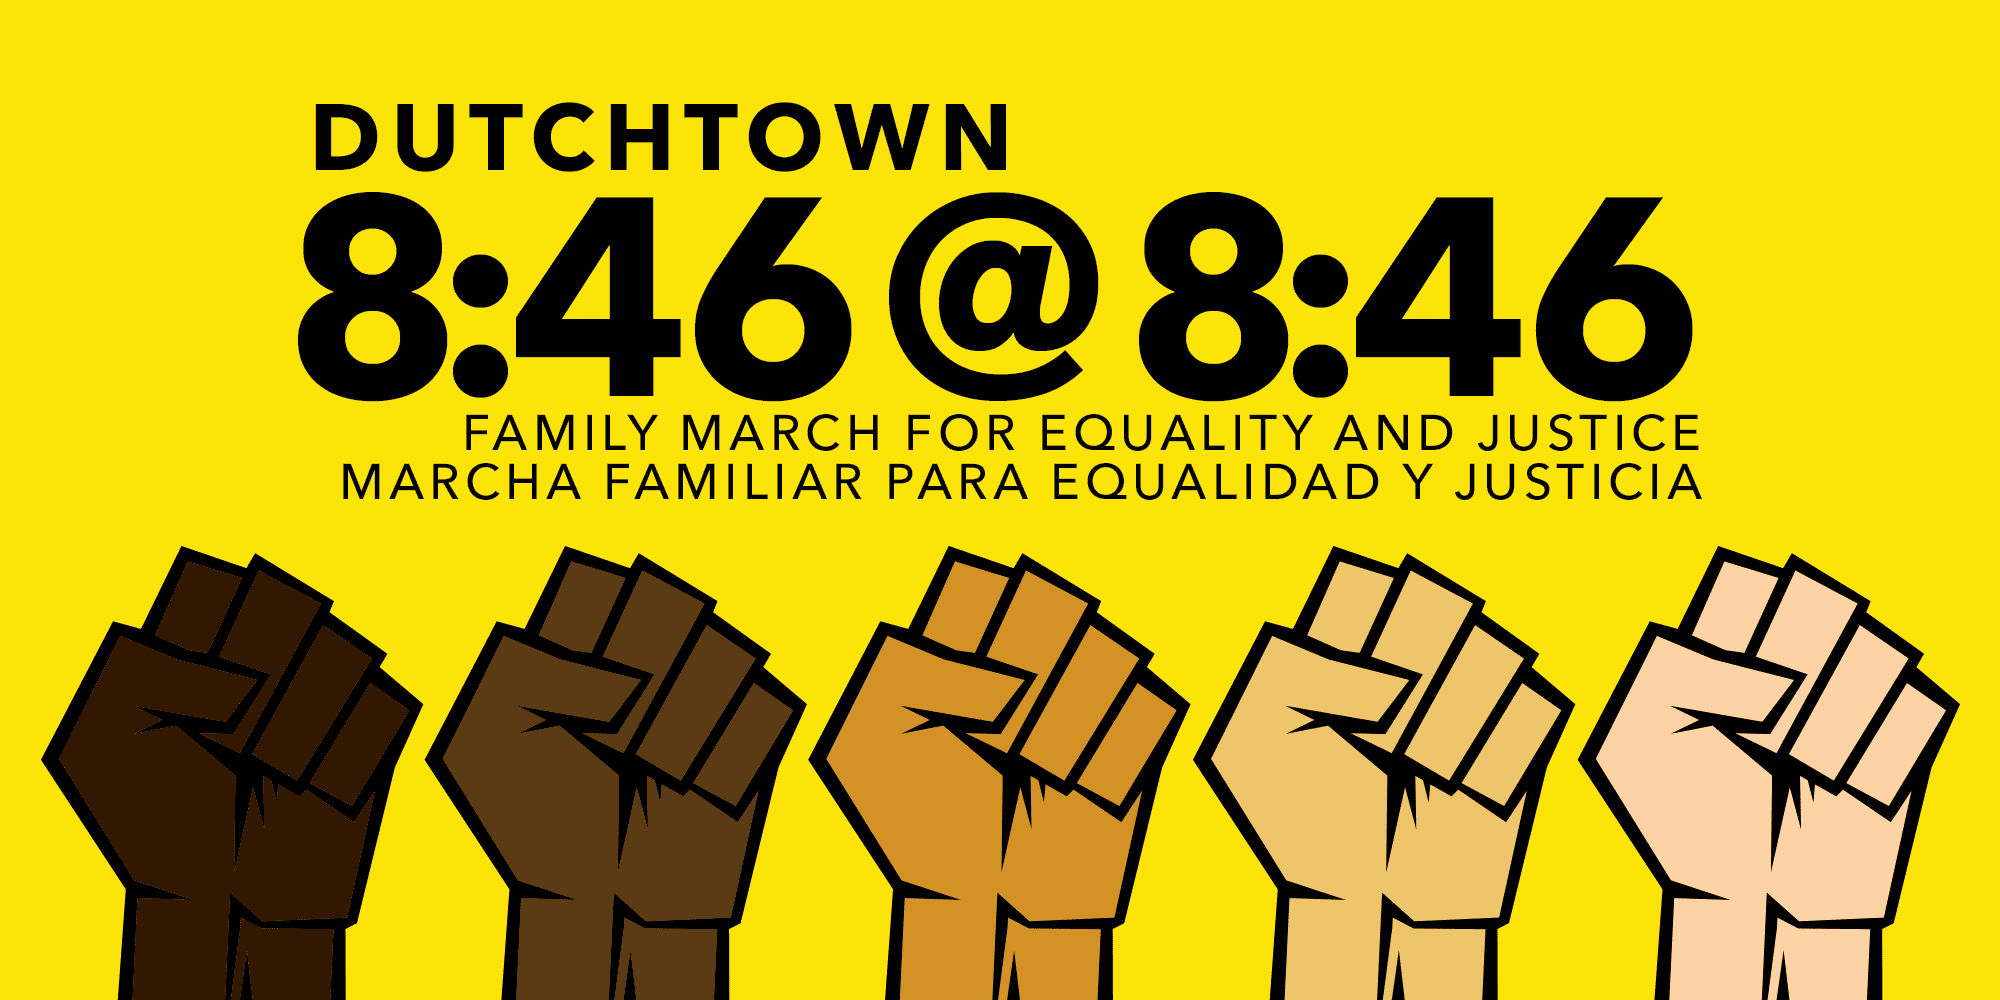 Dutchtown 8:46 @ 8:46: Family march for equality and justice/Marcha familiar para equalidad y justicia.